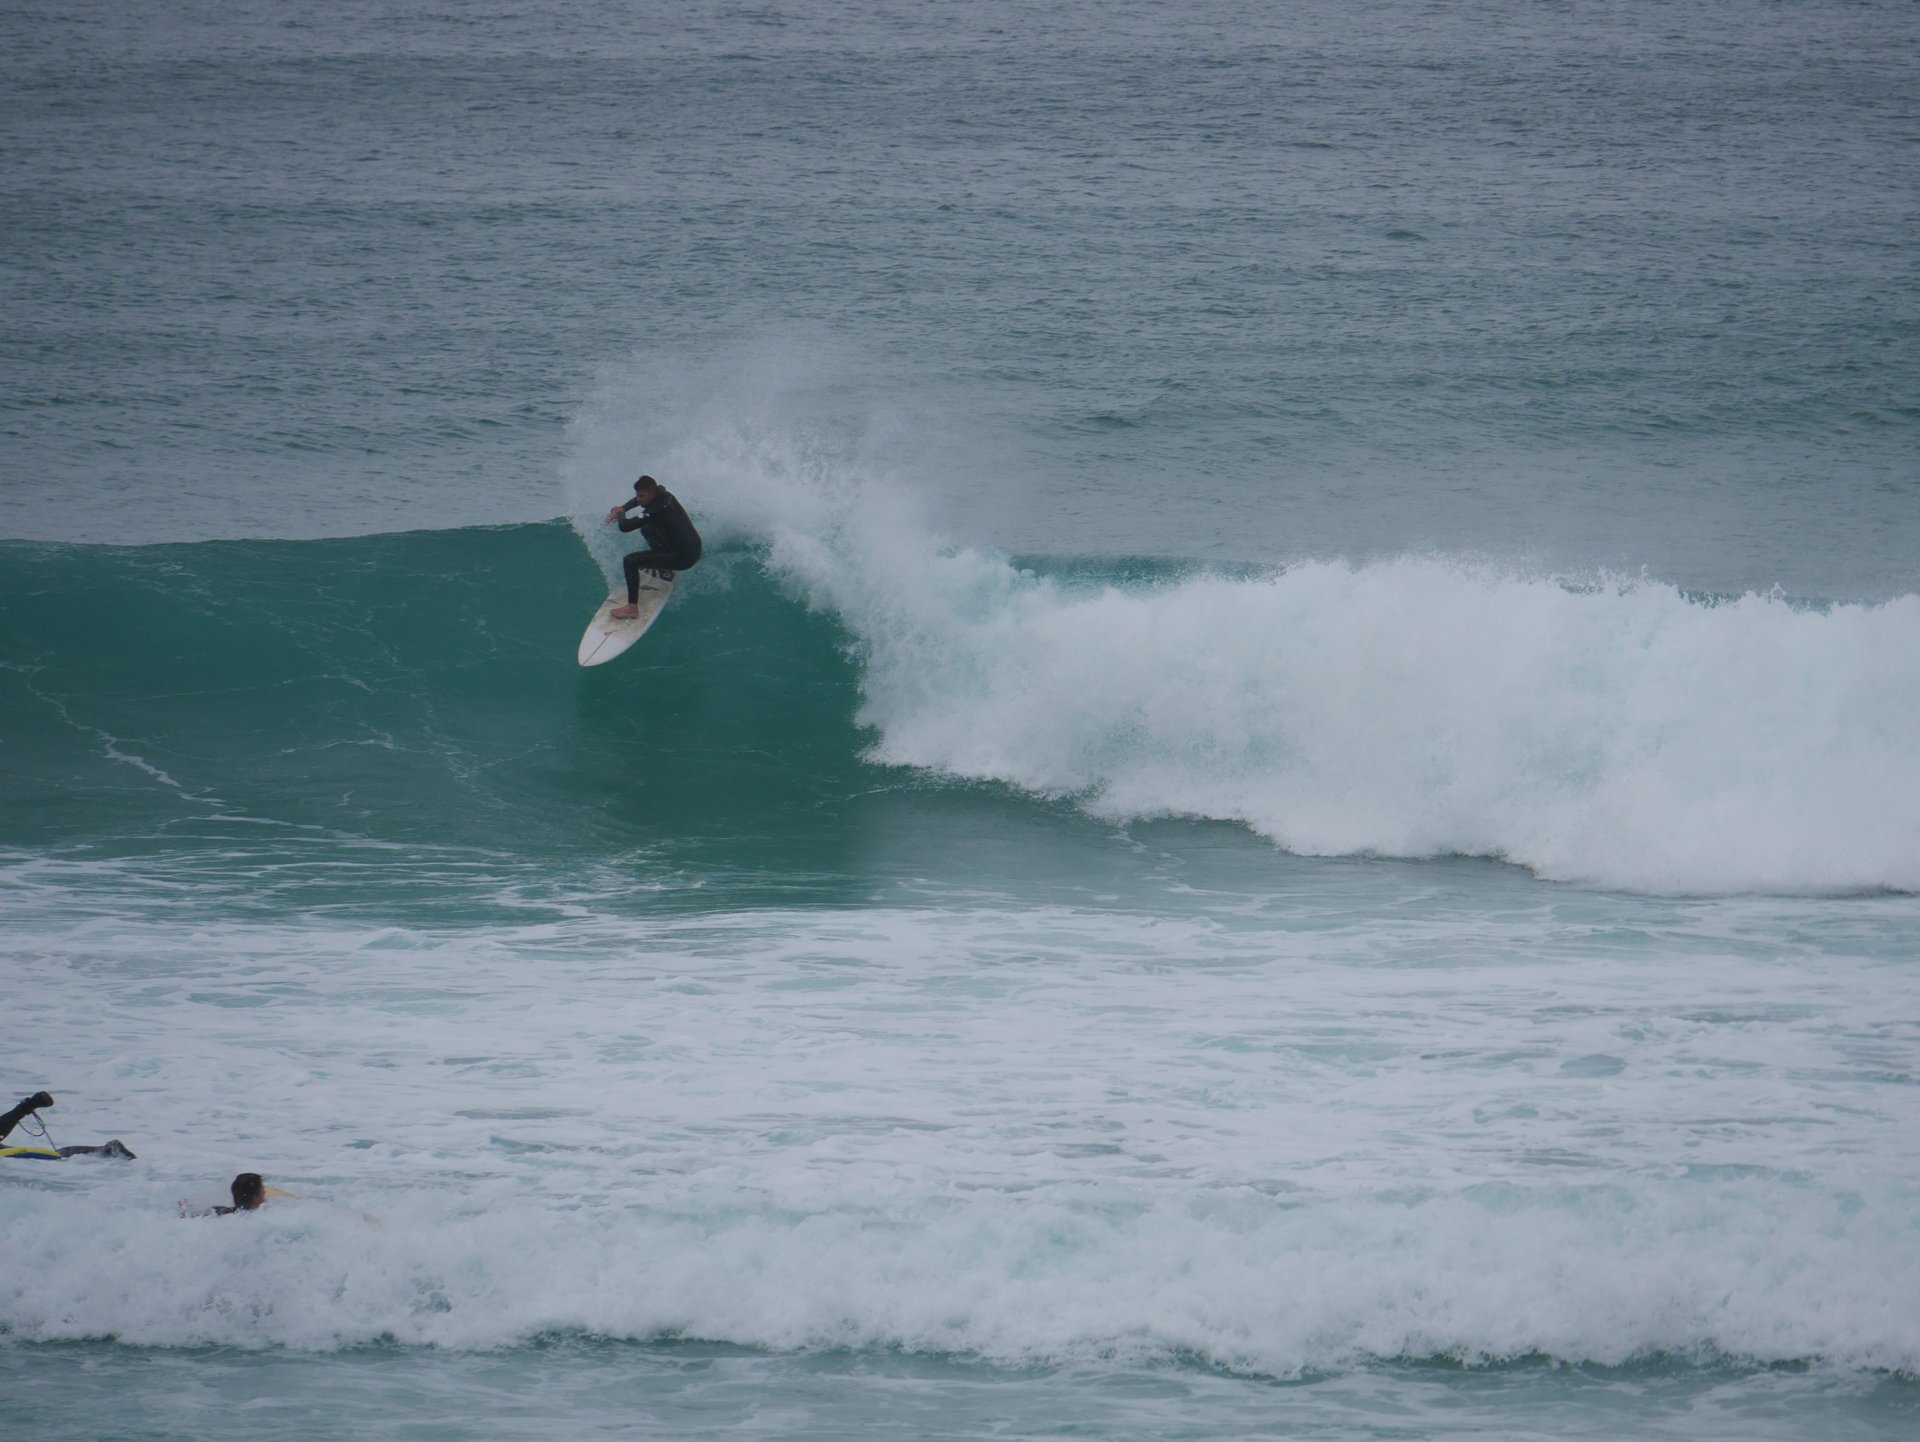 Ofer Deshe's photo of Porthmeor